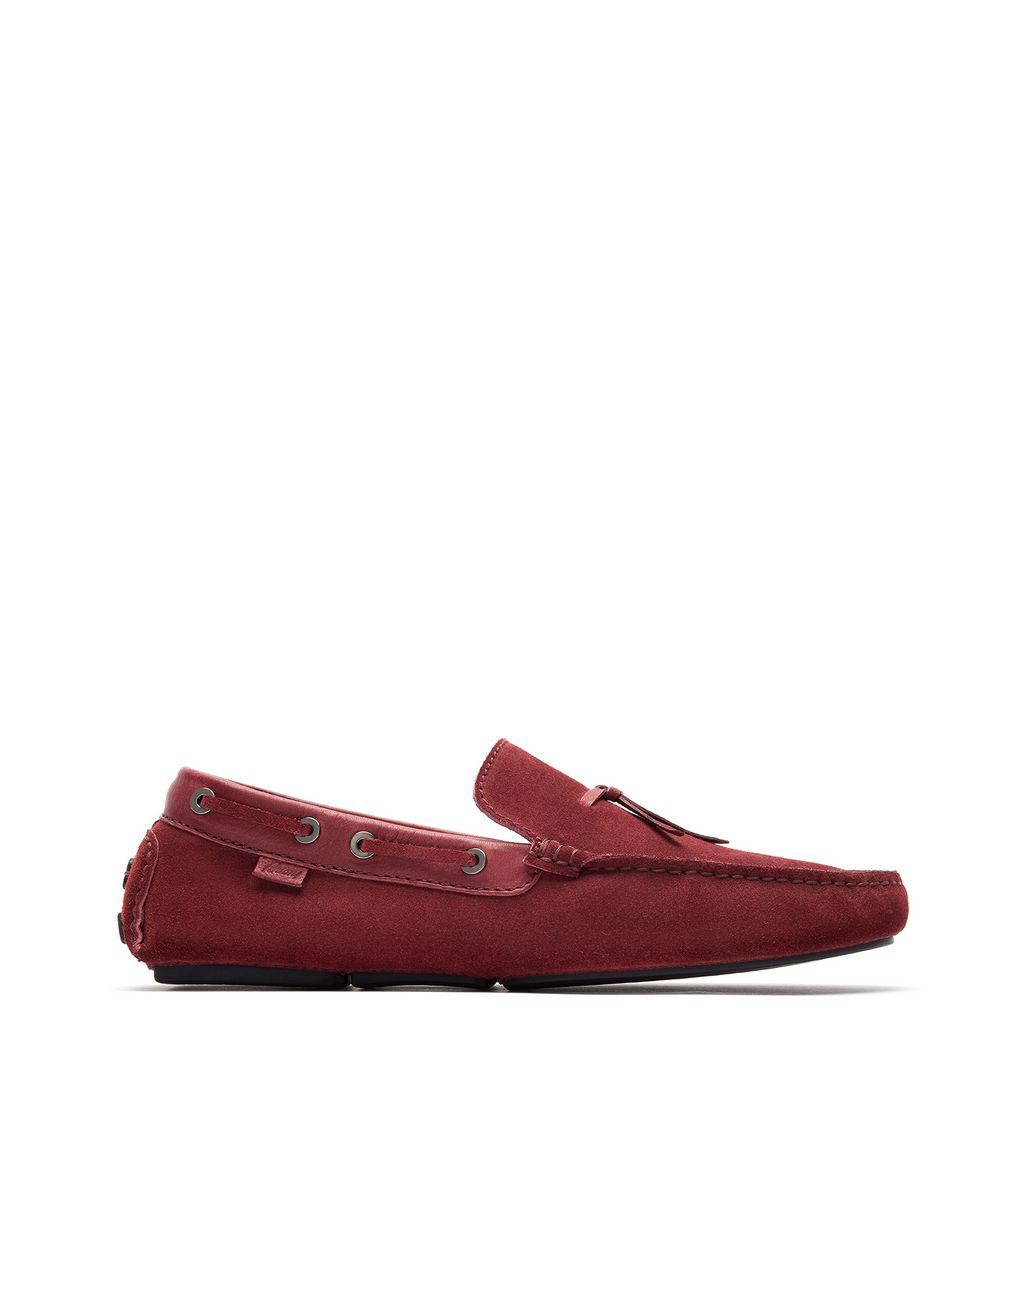 BRIONI Bordeaux Unlined Calf Suede Loafer Loafers Man f